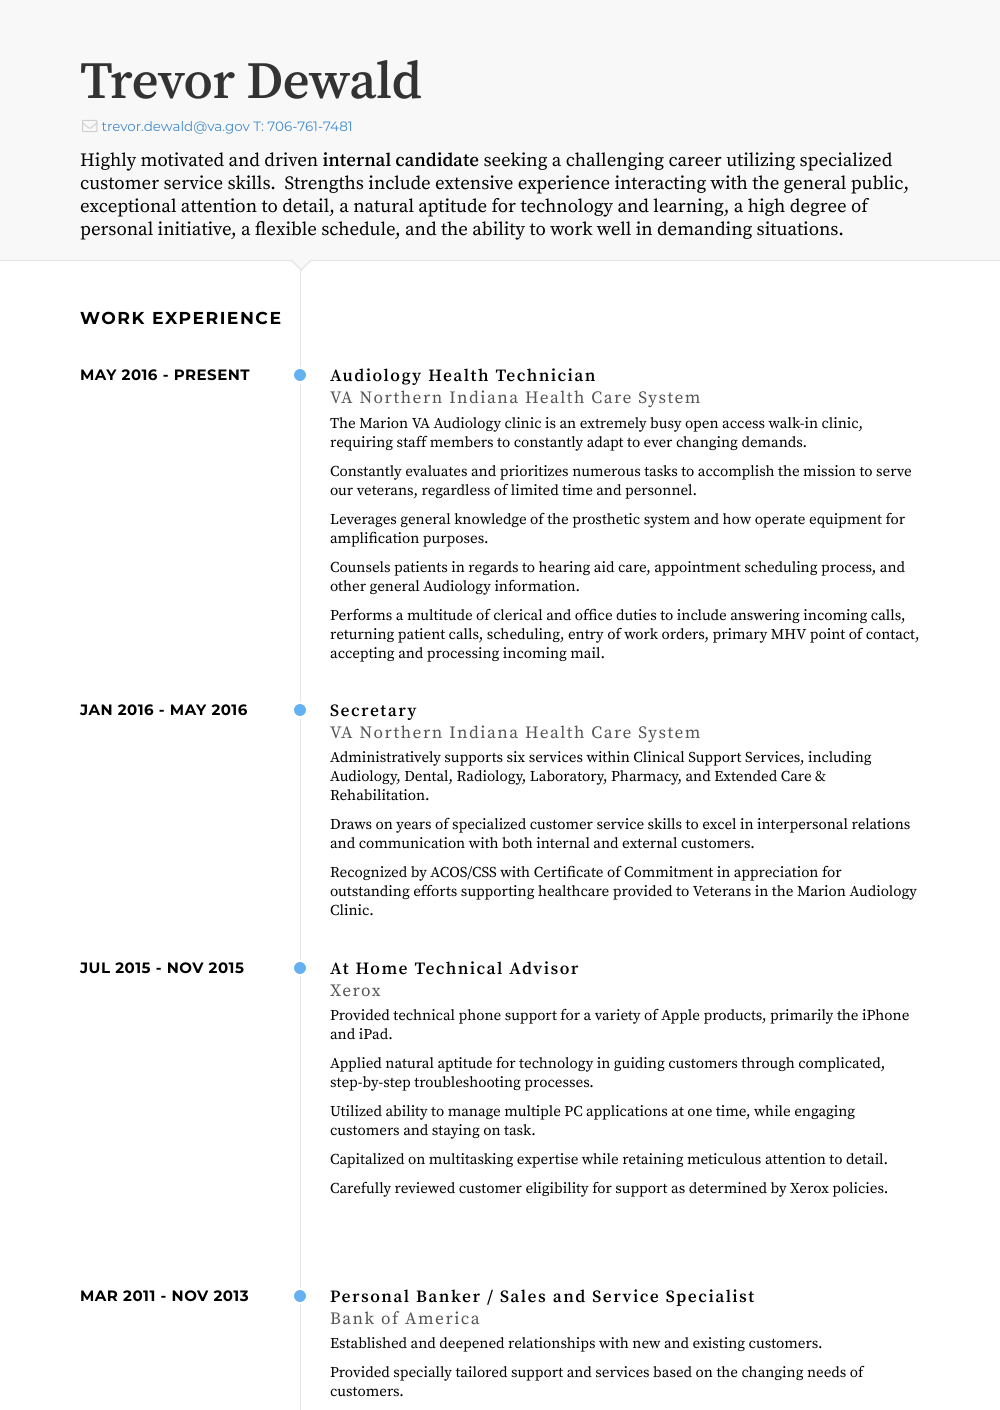 Personal Banker Resume Samples Amp Templates Visualcv